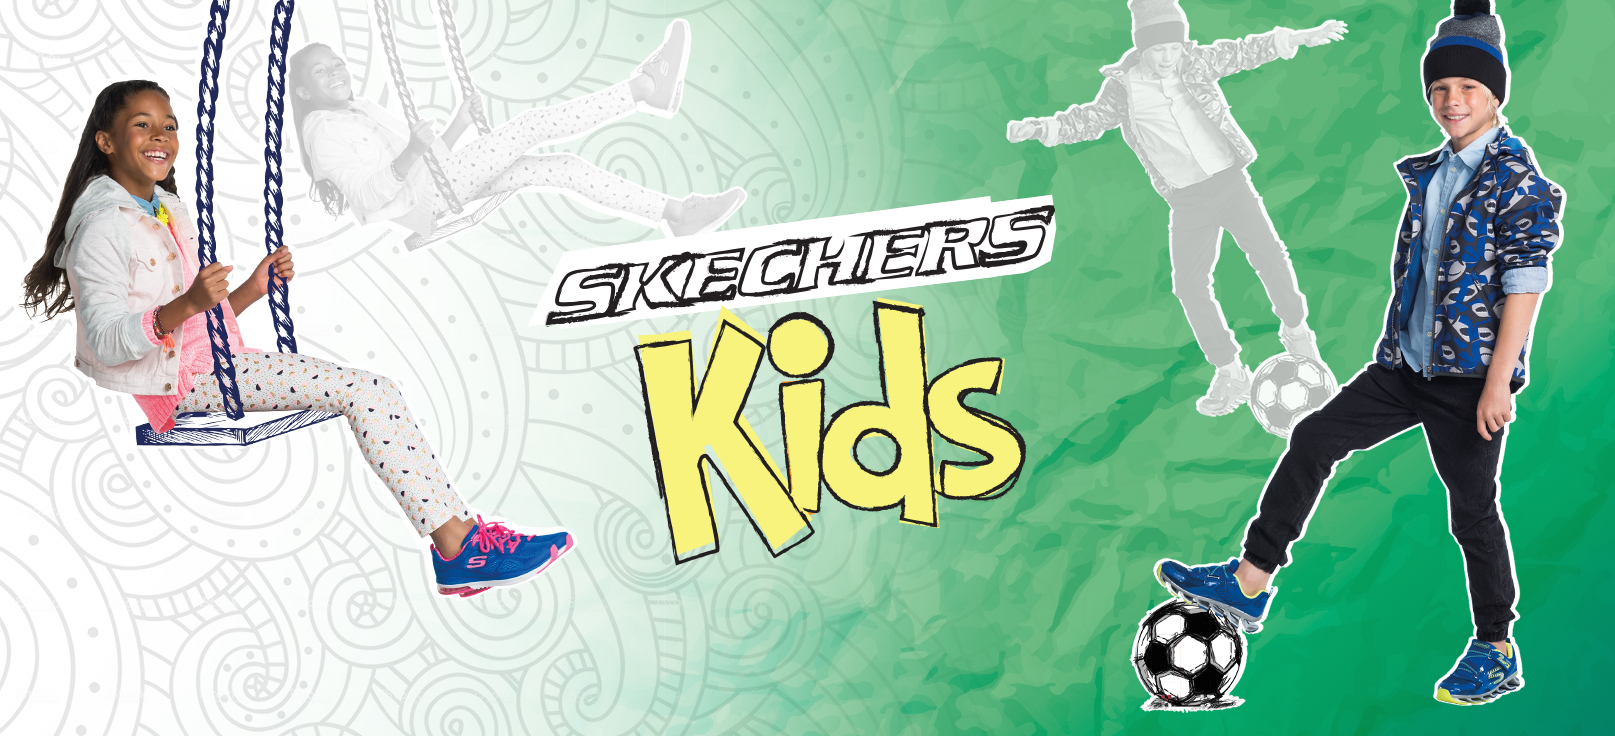 skechers kids ads